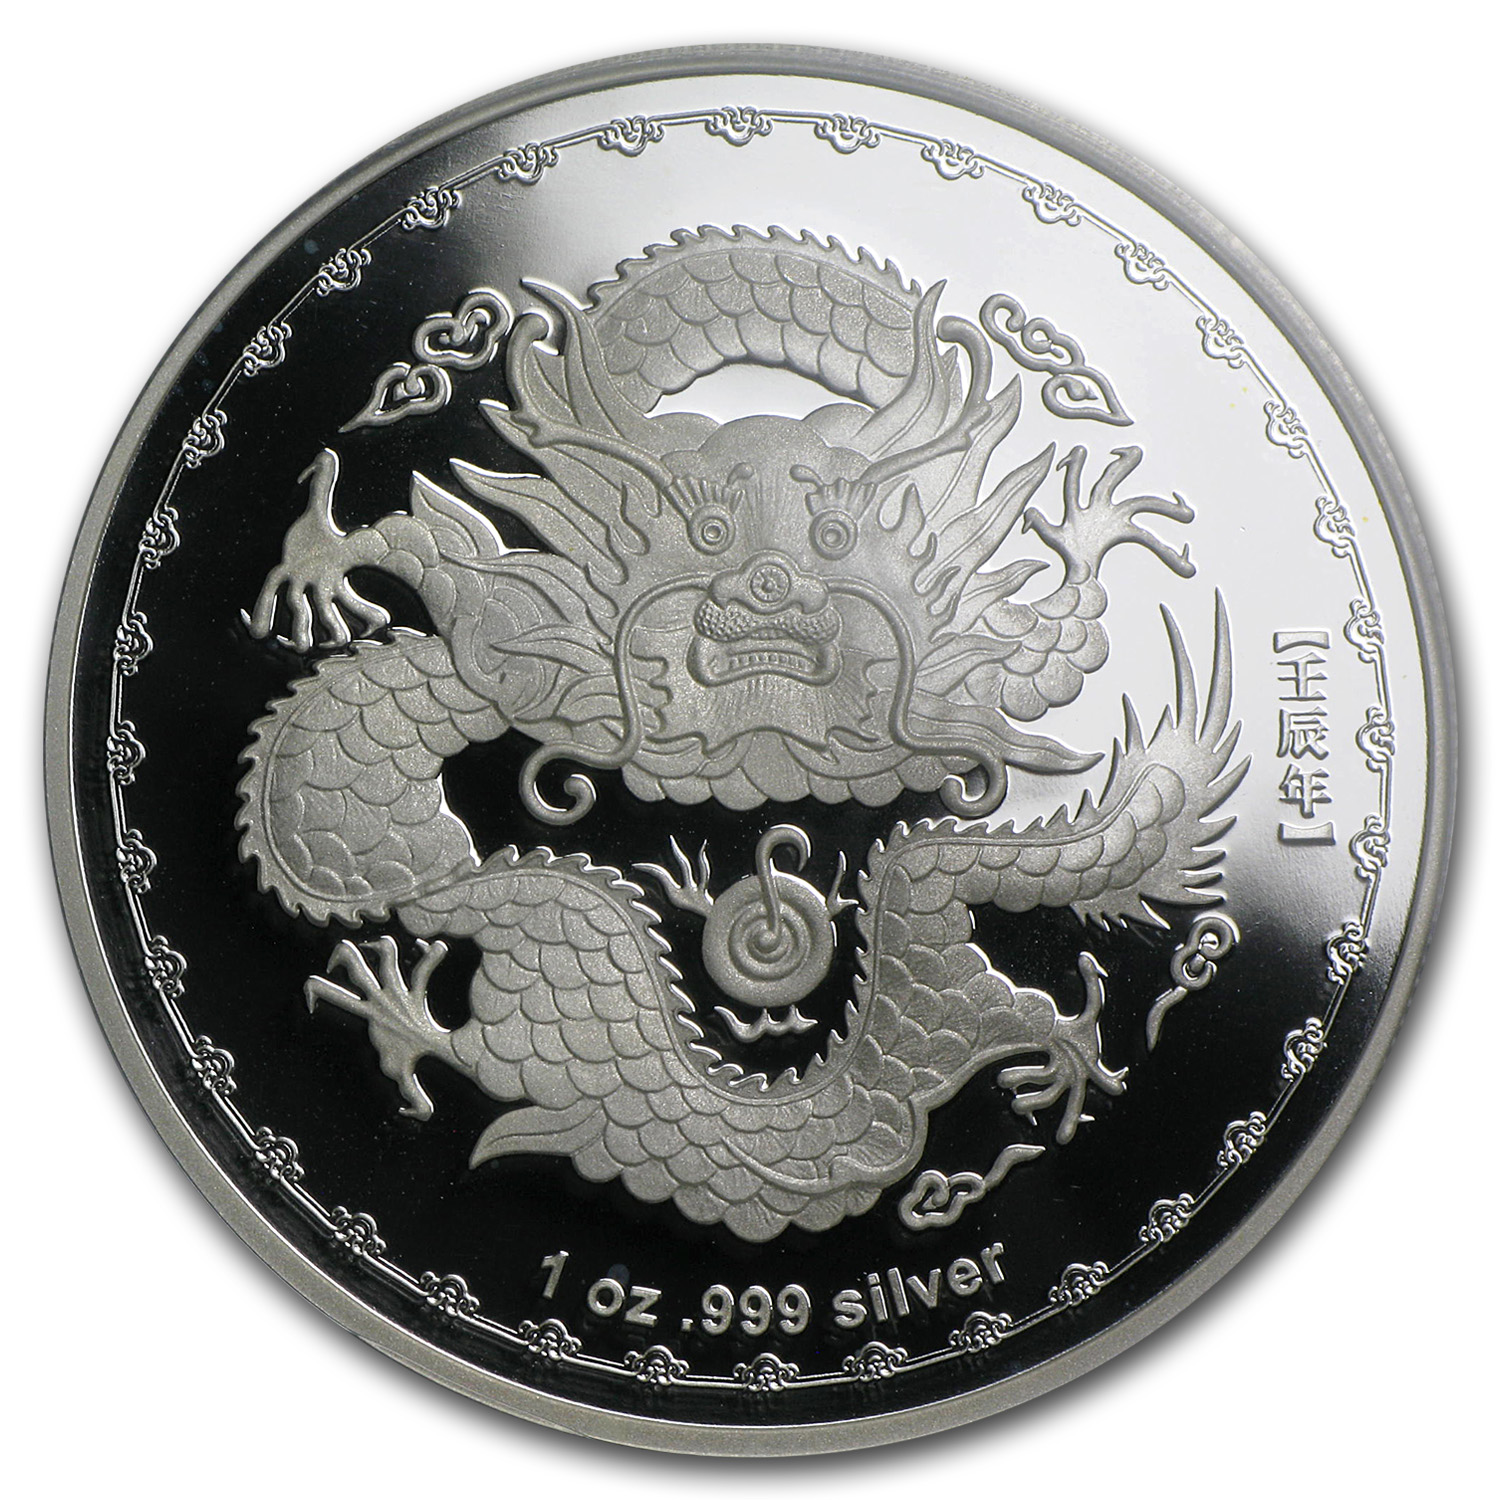 Australian Mint 2012 1 oz Silver Year of the Dragon PR-69 PCGS